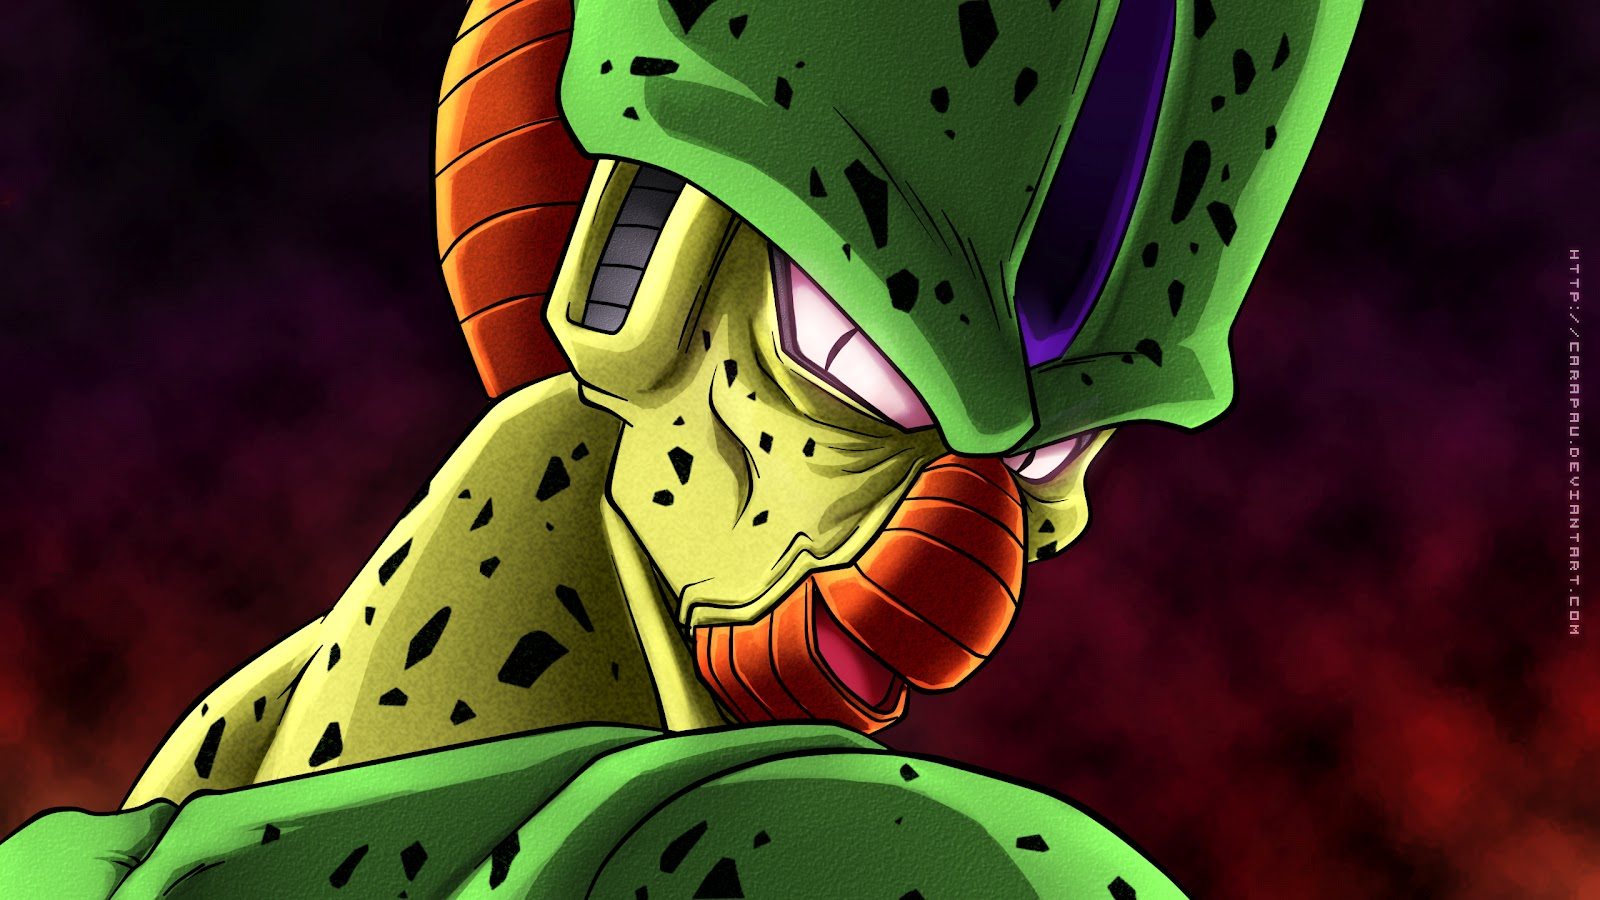 DRAGON BALL Z WALLPAPERS: Imperfect cell